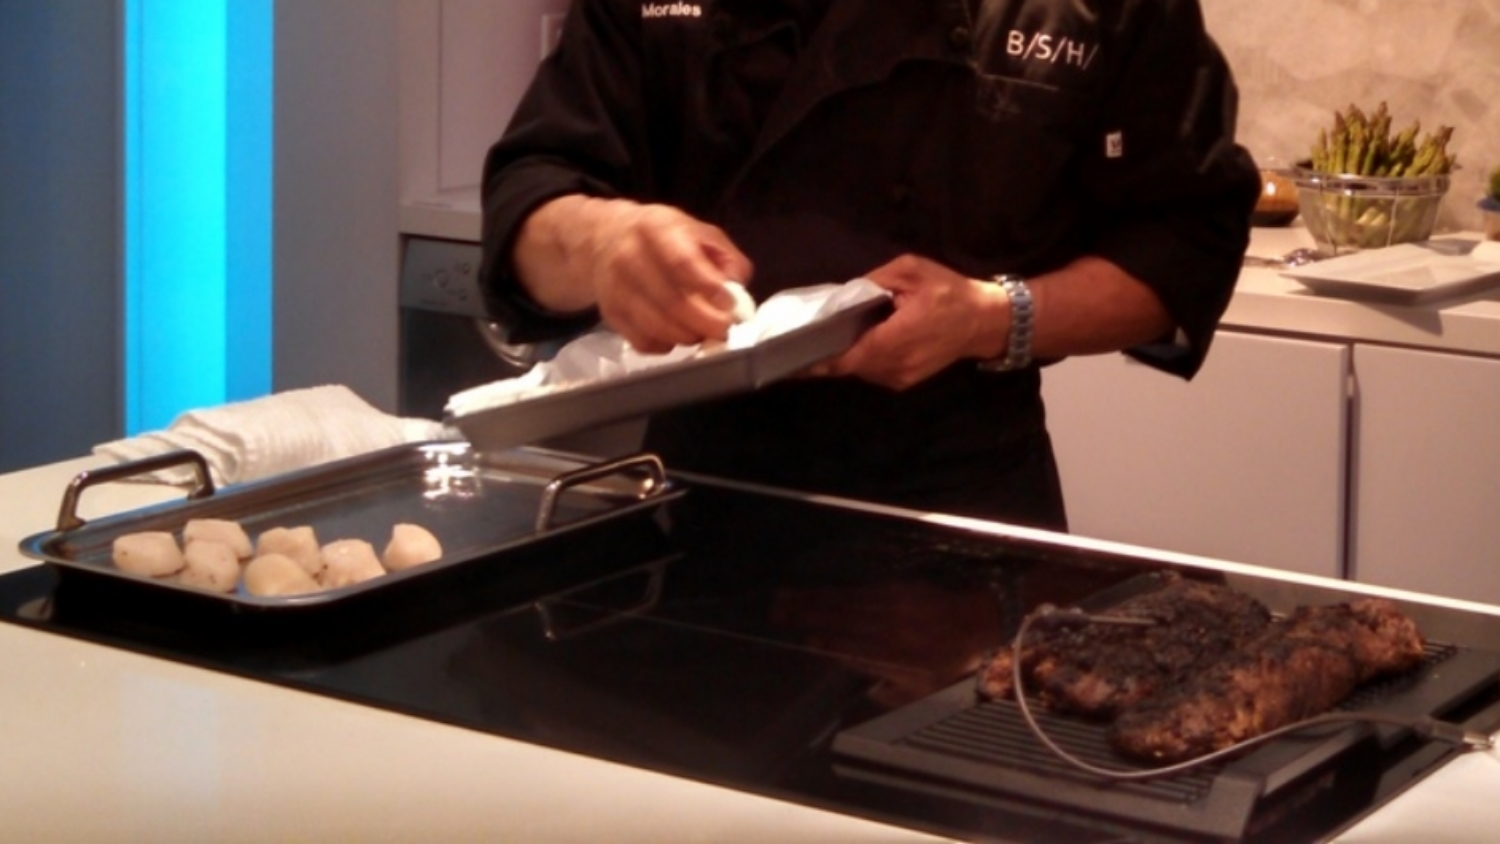 Searing scallops on a teppanyaki pan and steak using the grill accessory on the Bosch model NITP666UC induction cook top